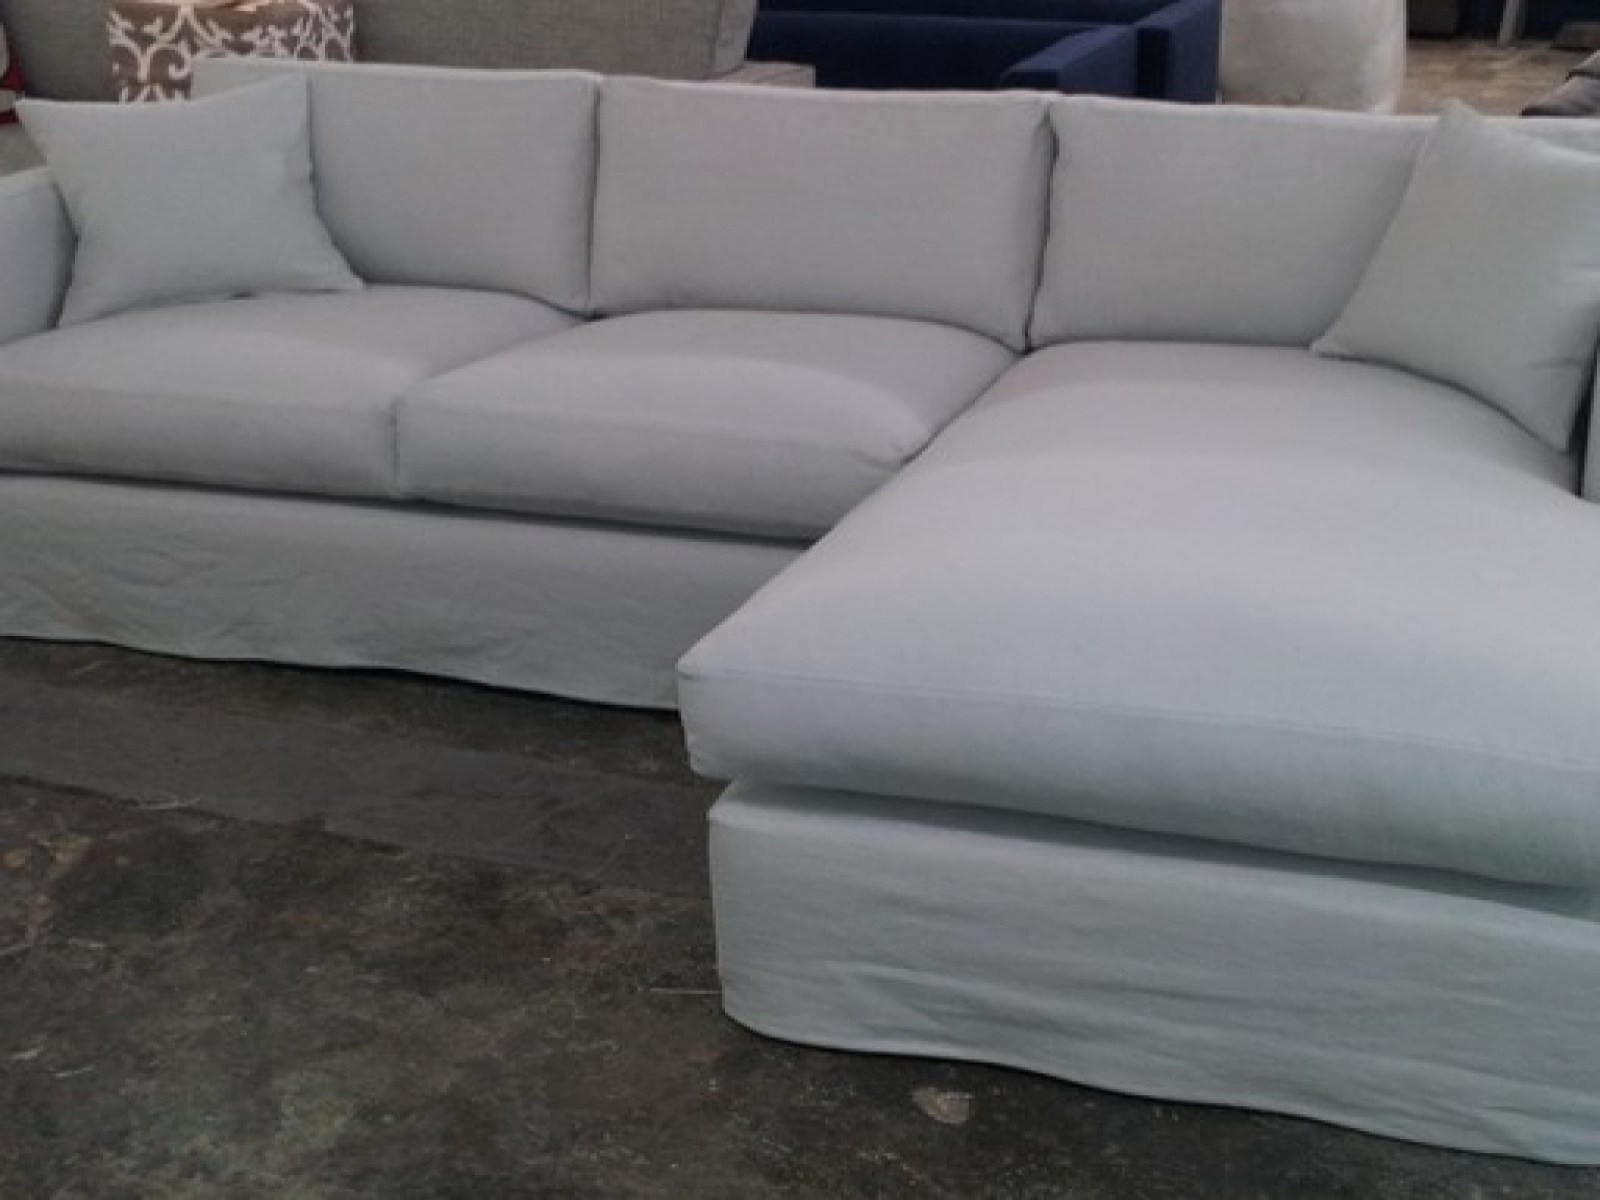 ▻ Sofa : 34 Recliner Sofa Covers Couch Slipcovers Target Slipcovers For Target Sectional Sofas (Image 1 of 10)